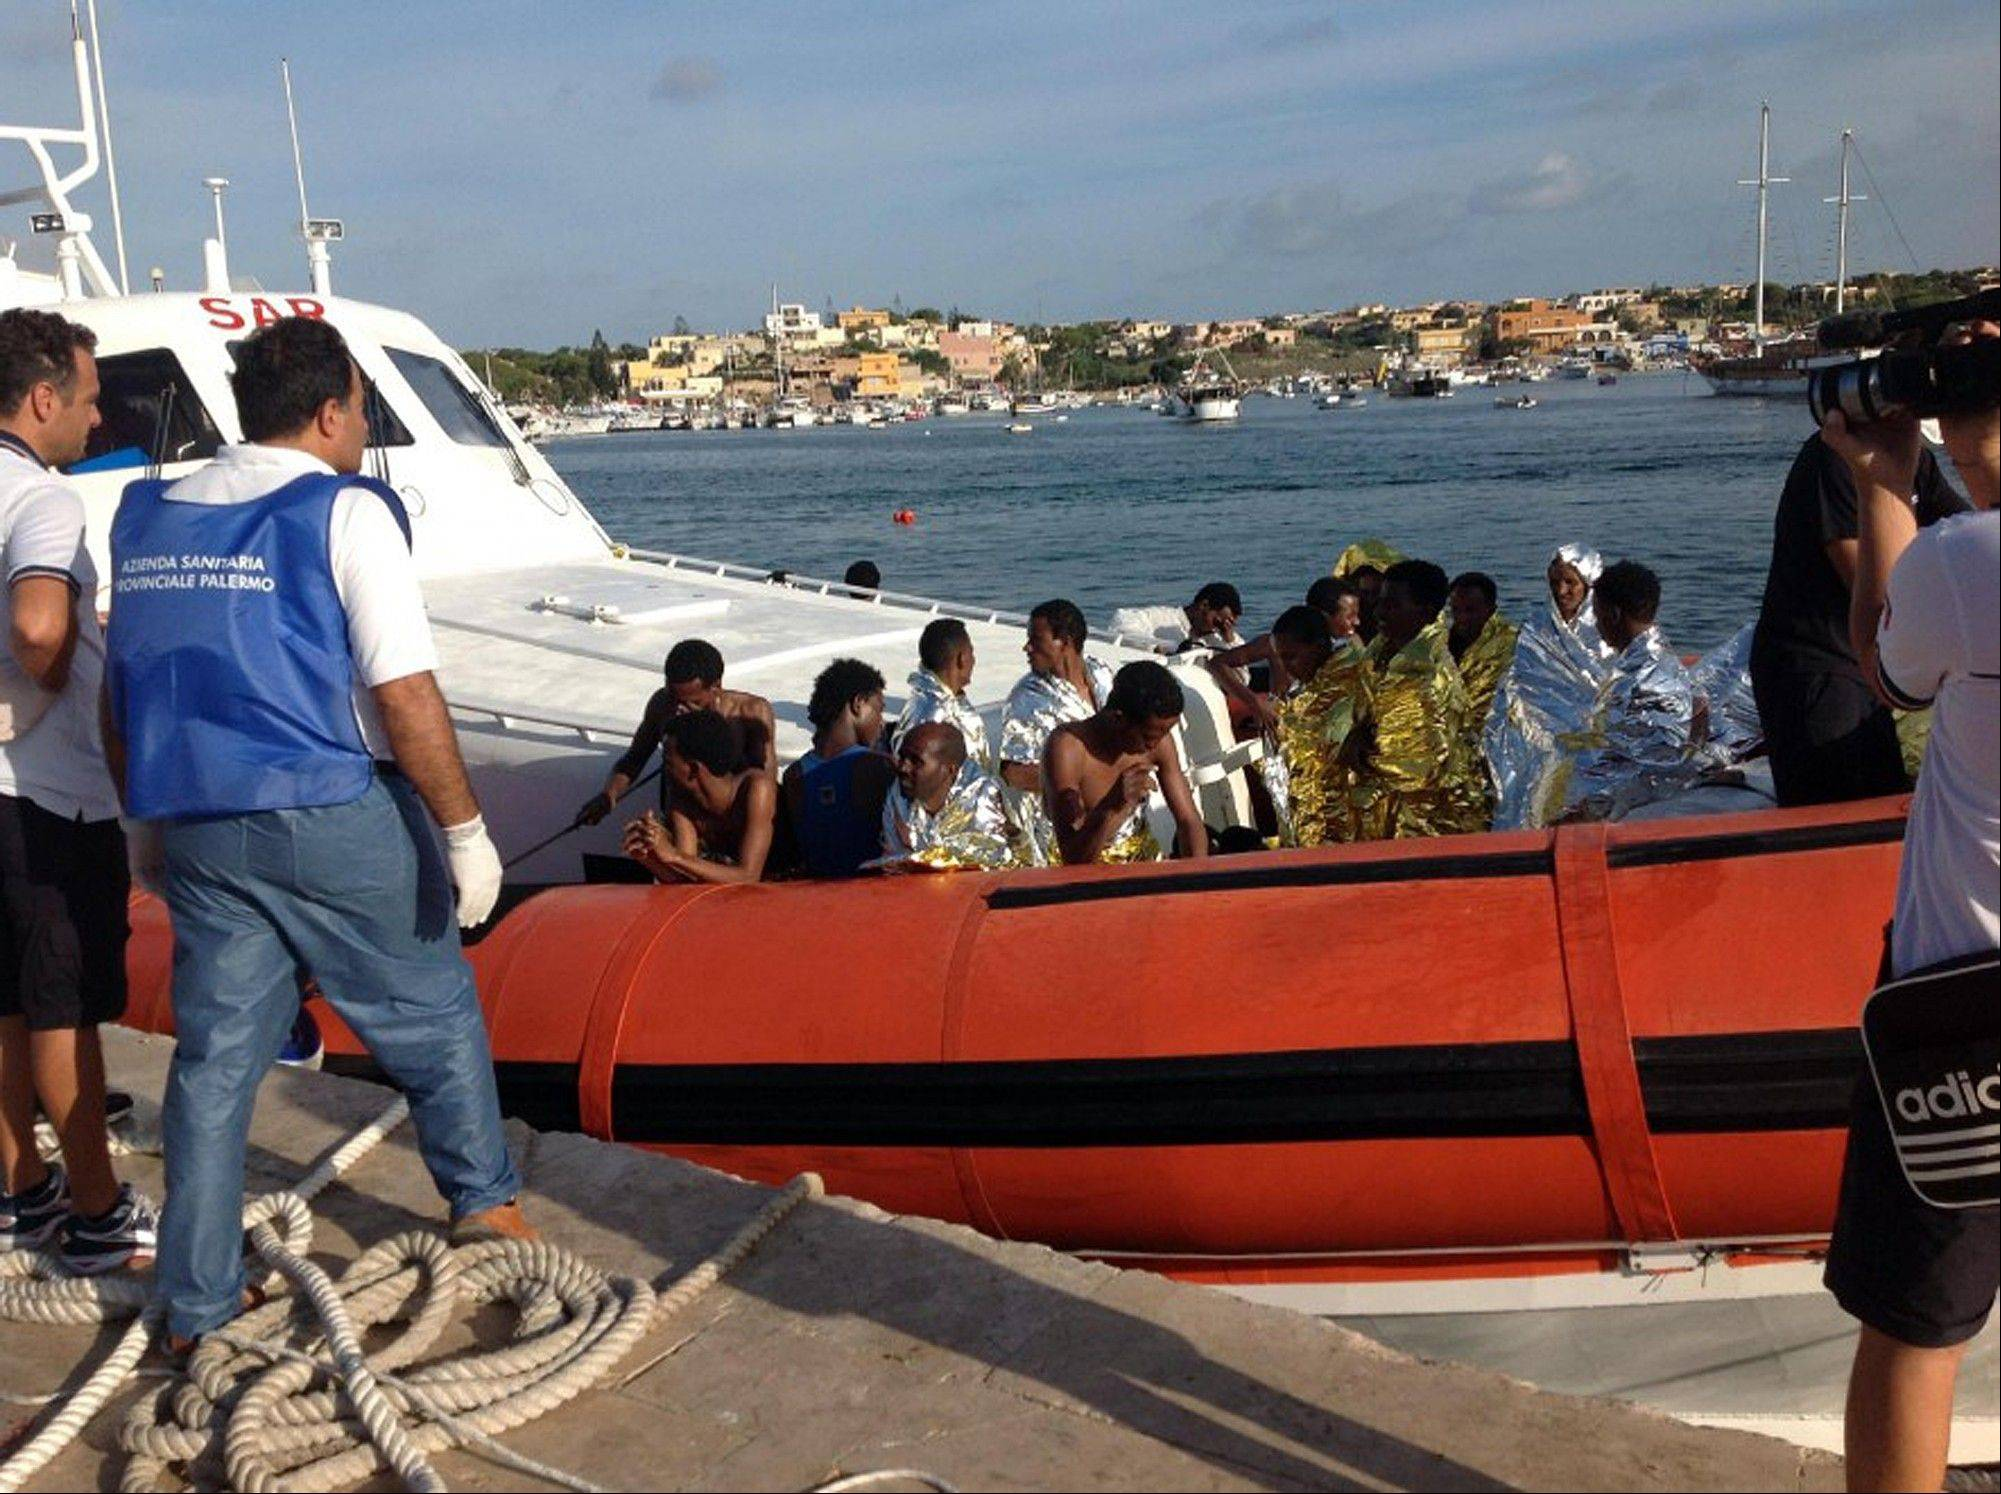 An Italian Coast Guard boat carries rescued migrants as they arrive in the port of Lampedusa Thursday. A ship carrying African migrants to Europe caught fire and capsized off the Italian island of Lampedusa Thursday, killing at least 114 people as it spilled hundreds of passengers into the sea.